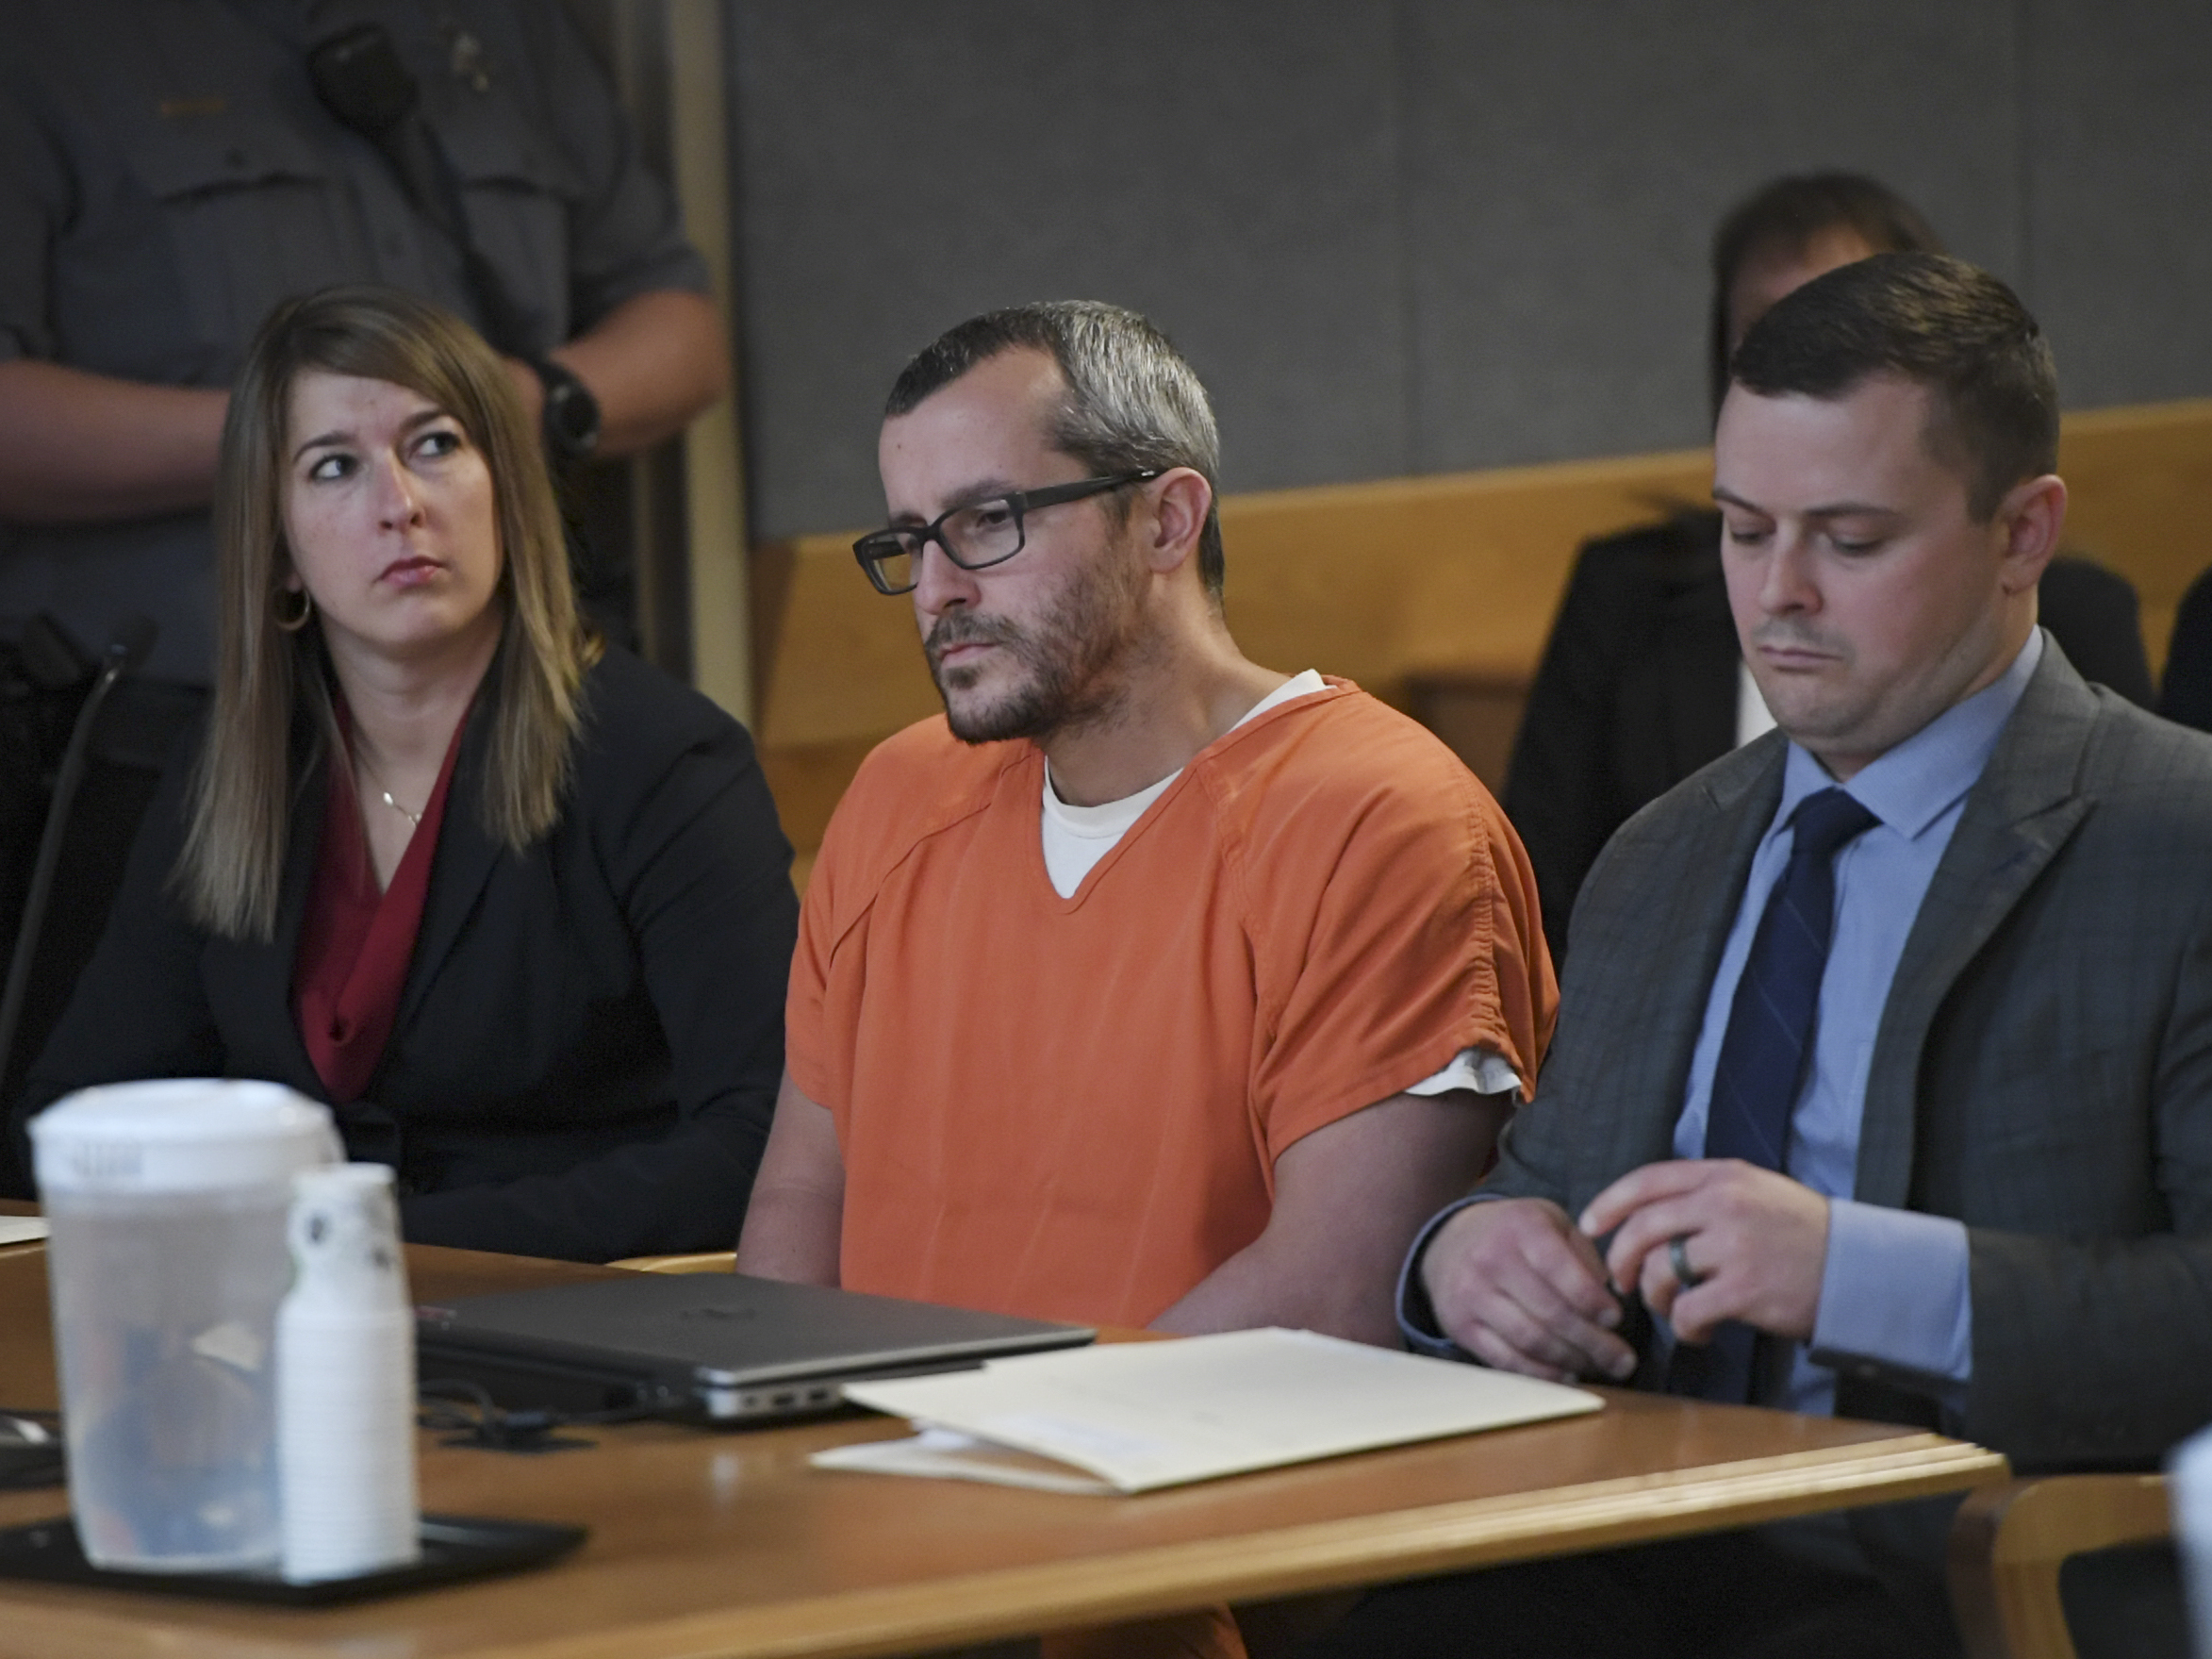 Colorado Man Sentenced To Life In Prison For Killing Pregnant Wife And Daughters